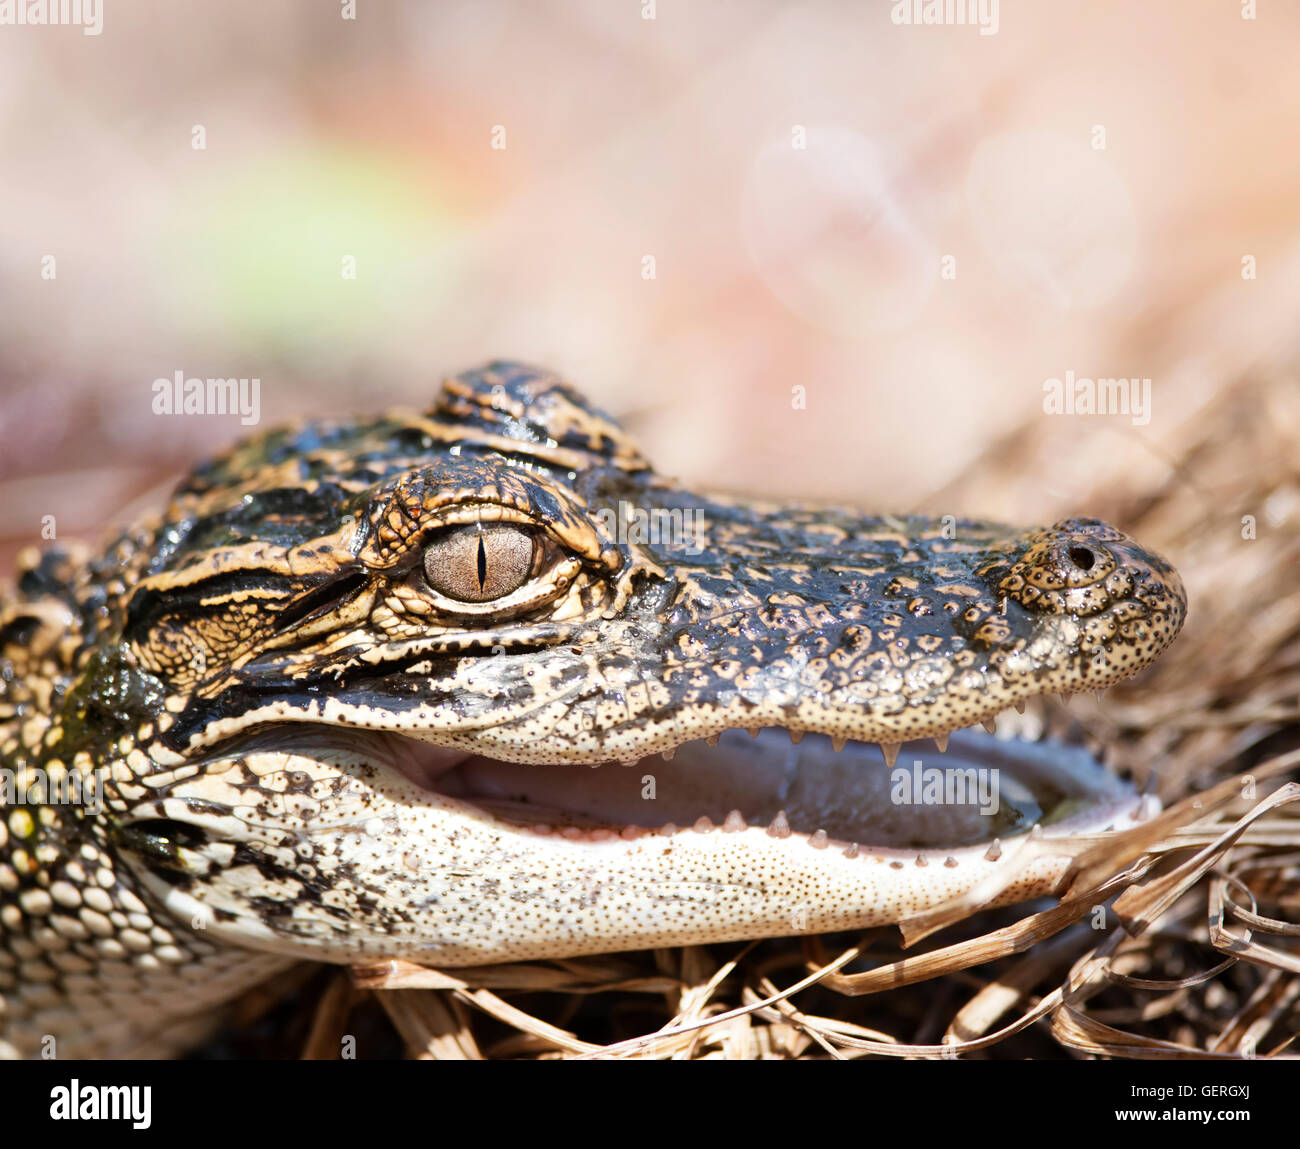 Young American Alligator , close up - Stock Image